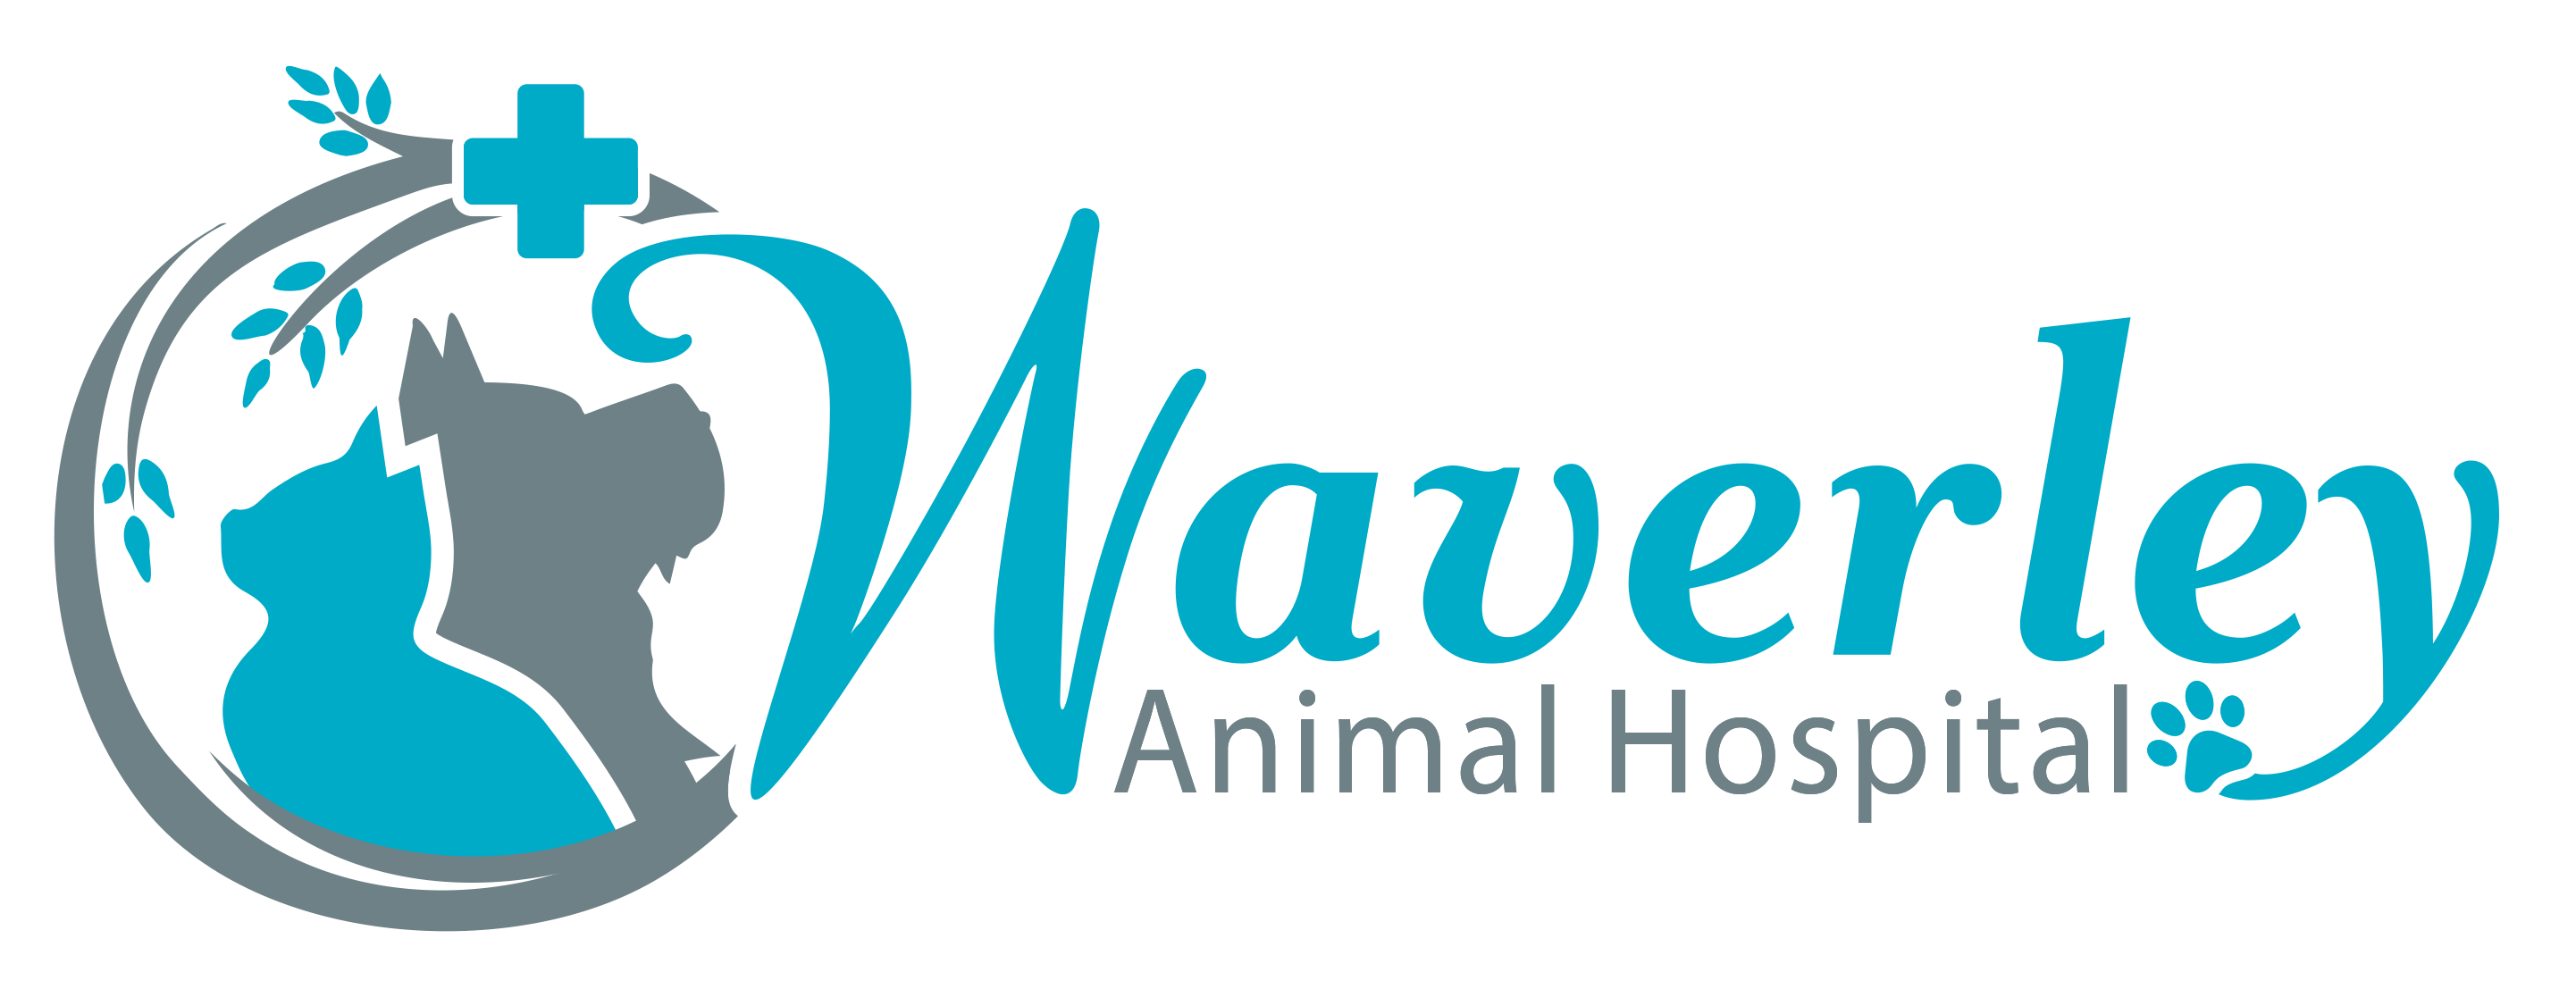 Waverley Animal Hospital